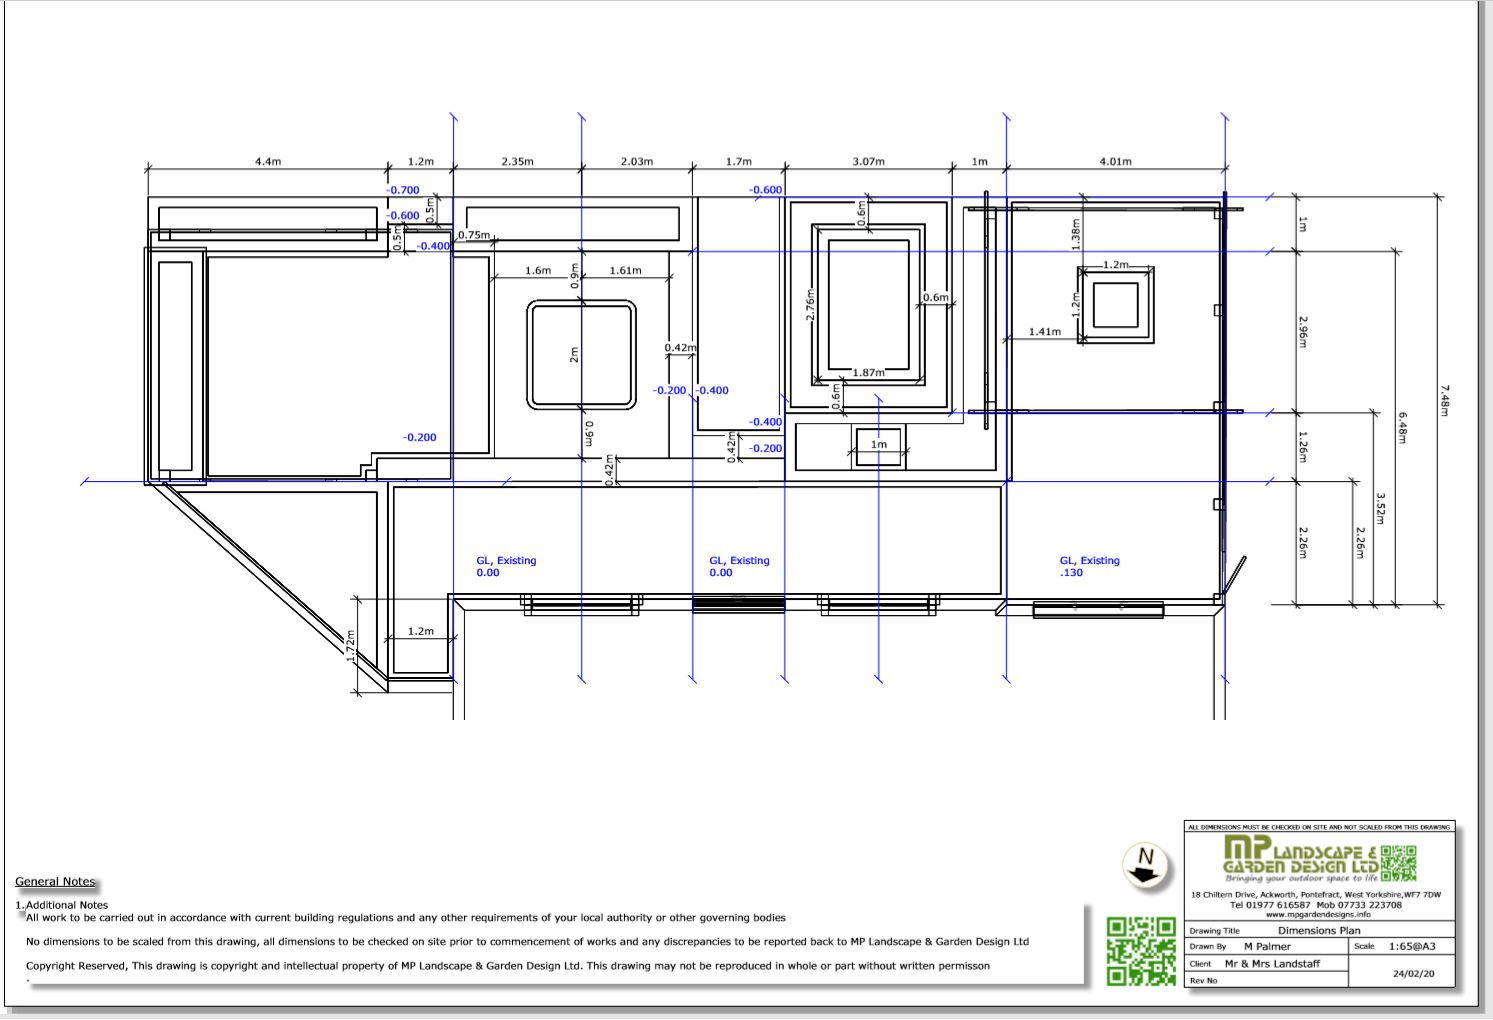 5, Dimensions plan for a property in Wakefield